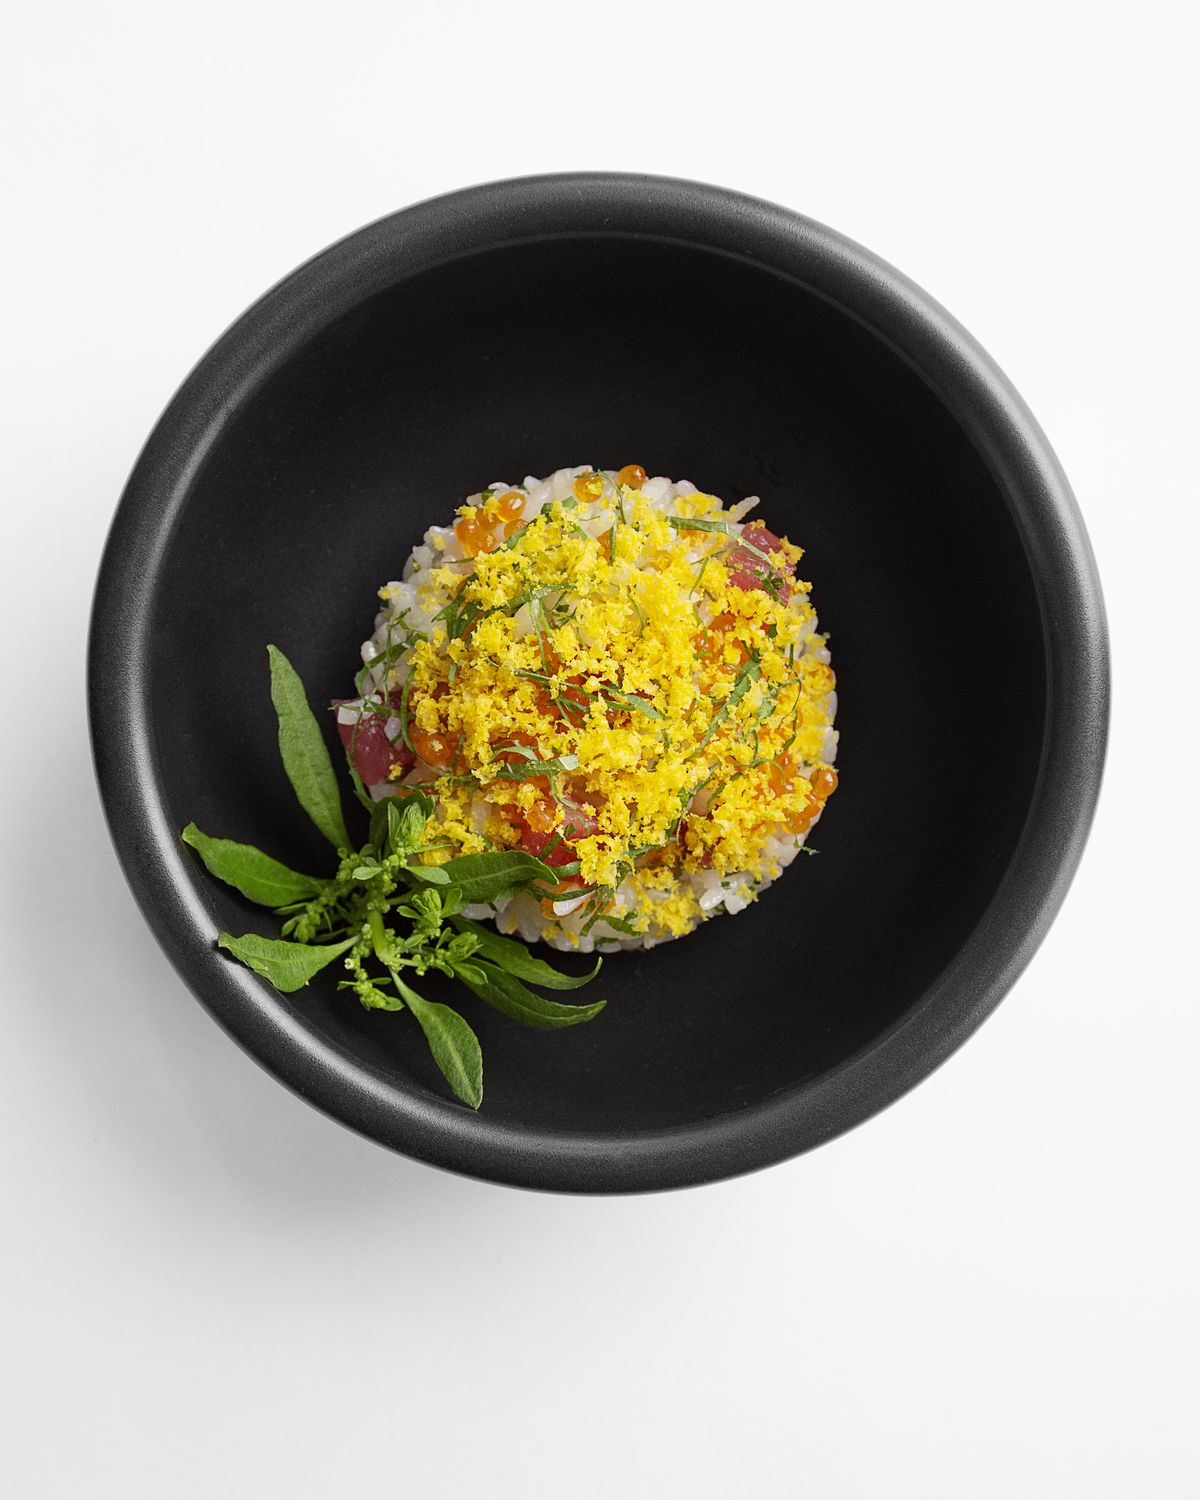 A black bowl with some yellow powder, small orange balls, and a green leaves